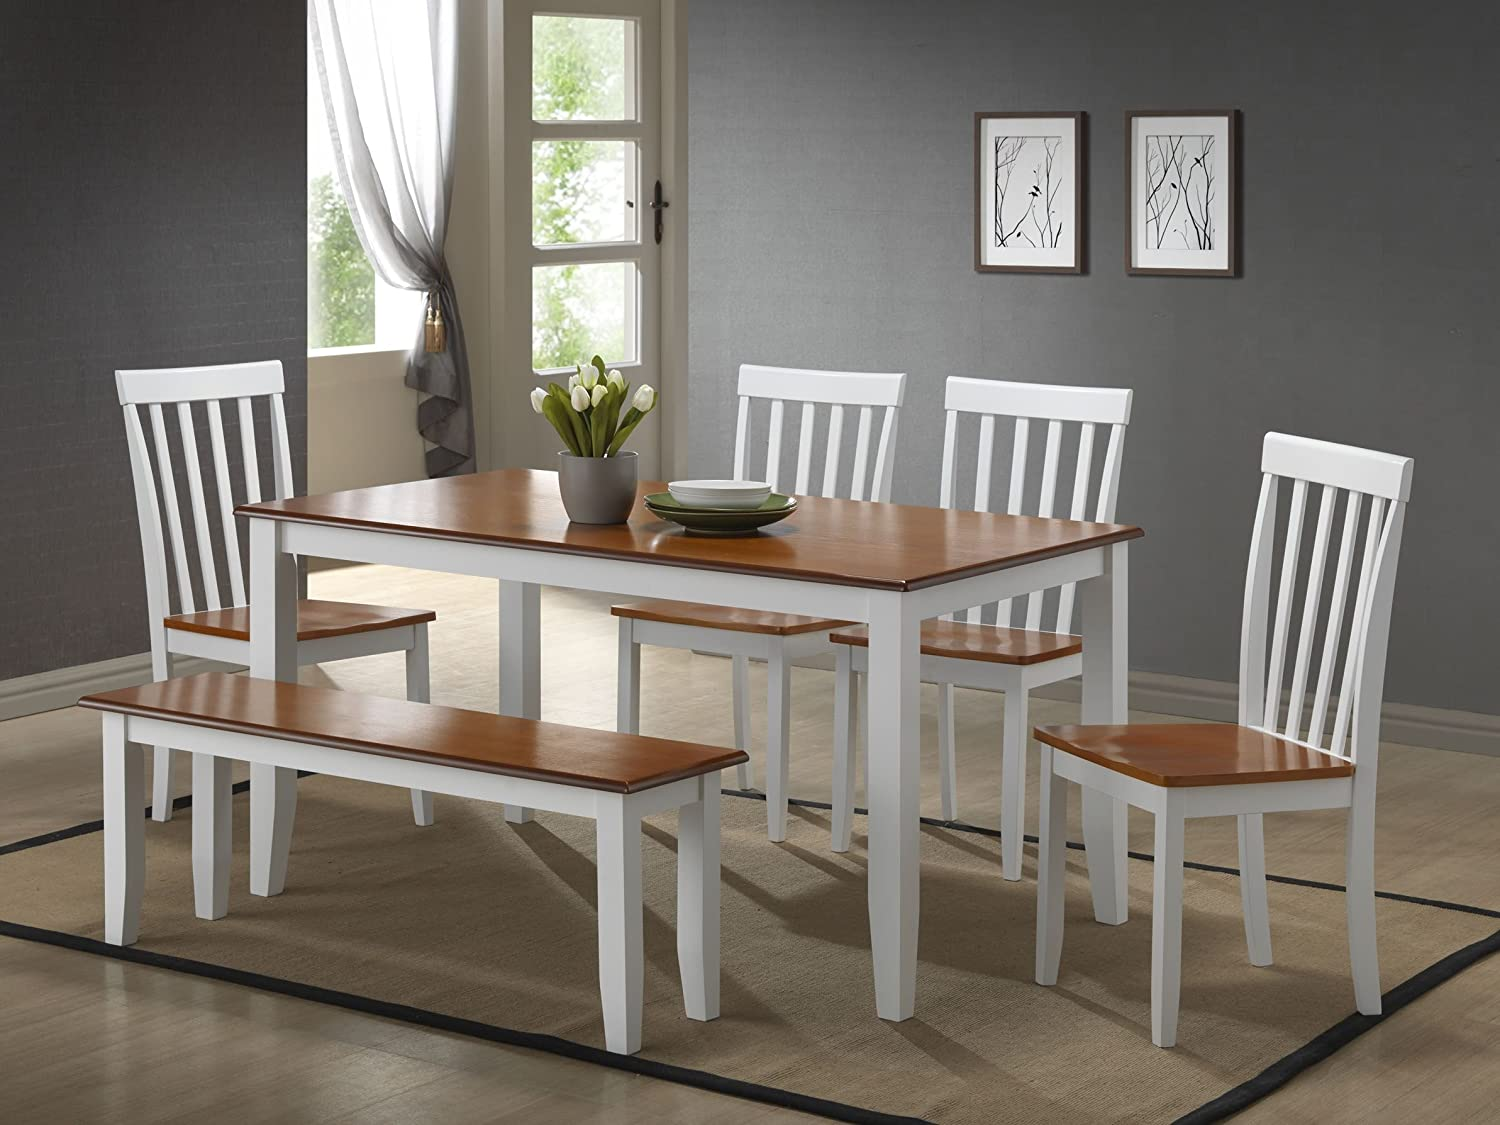 Amazon.com - Boraam 22034 Bloomington 6-Piece Dining Room Set White/Honey Oak - Table \u0026 Chair Sets & Amazon.com - Boraam 22034 Bloomington 6-Piece Dining Room Set ...